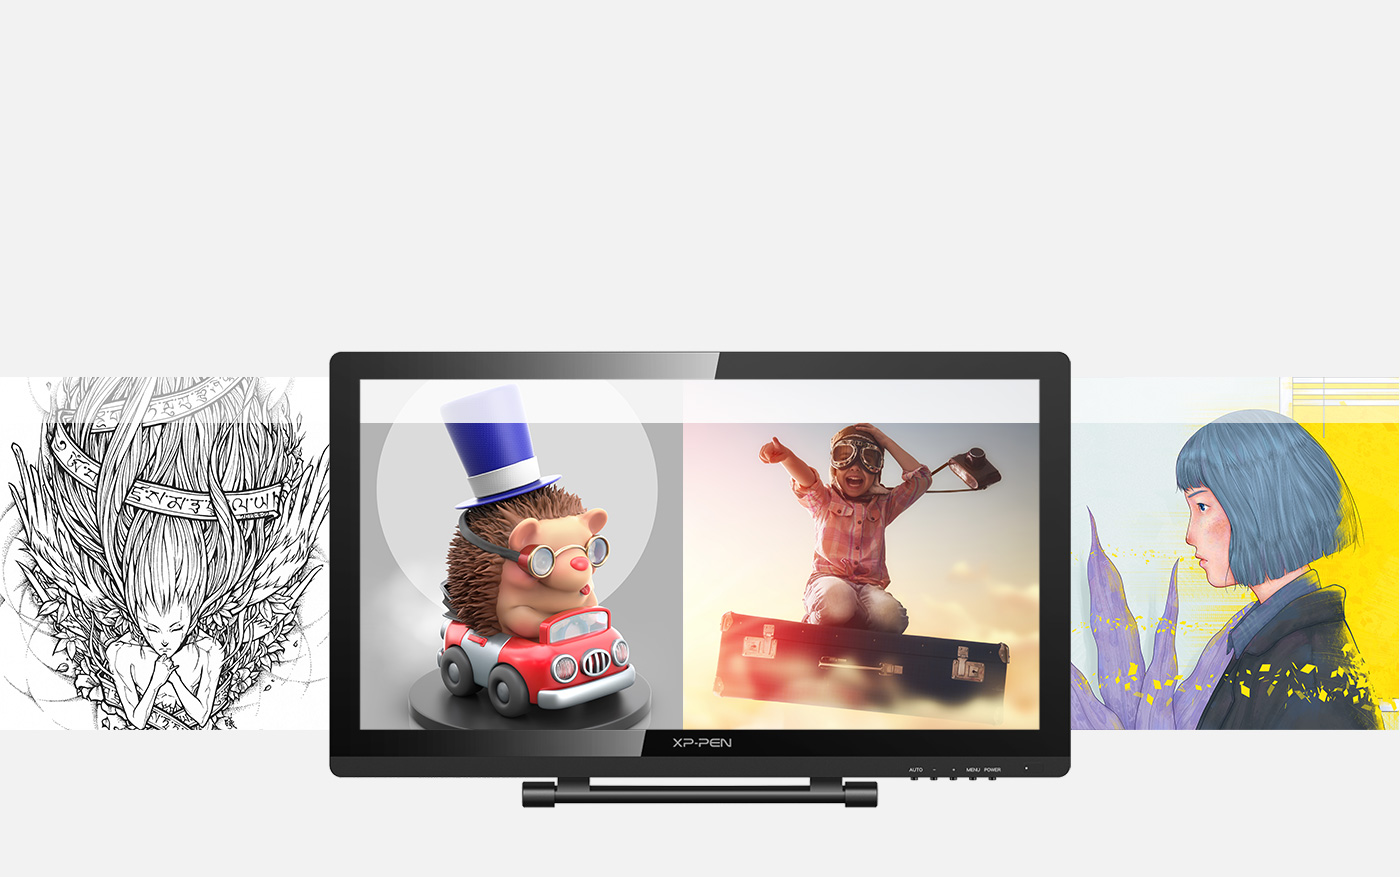 Draw, sketch, paint, and design on Artist 22 Pro pen monitor